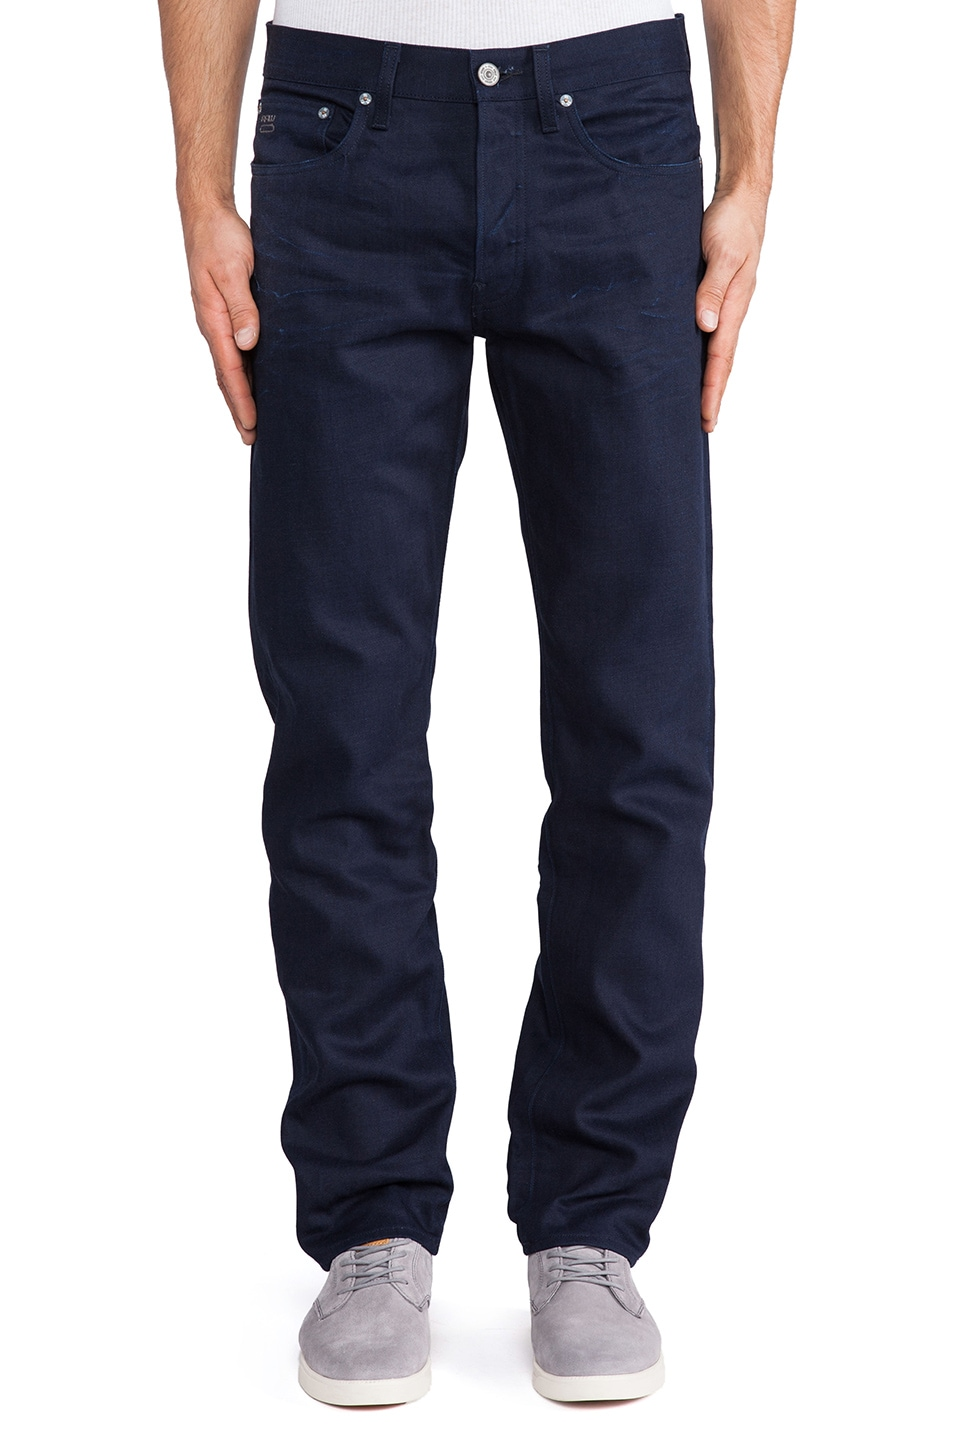 G-Star 3301 Straight Light Mazarine Denim in 3D Raw